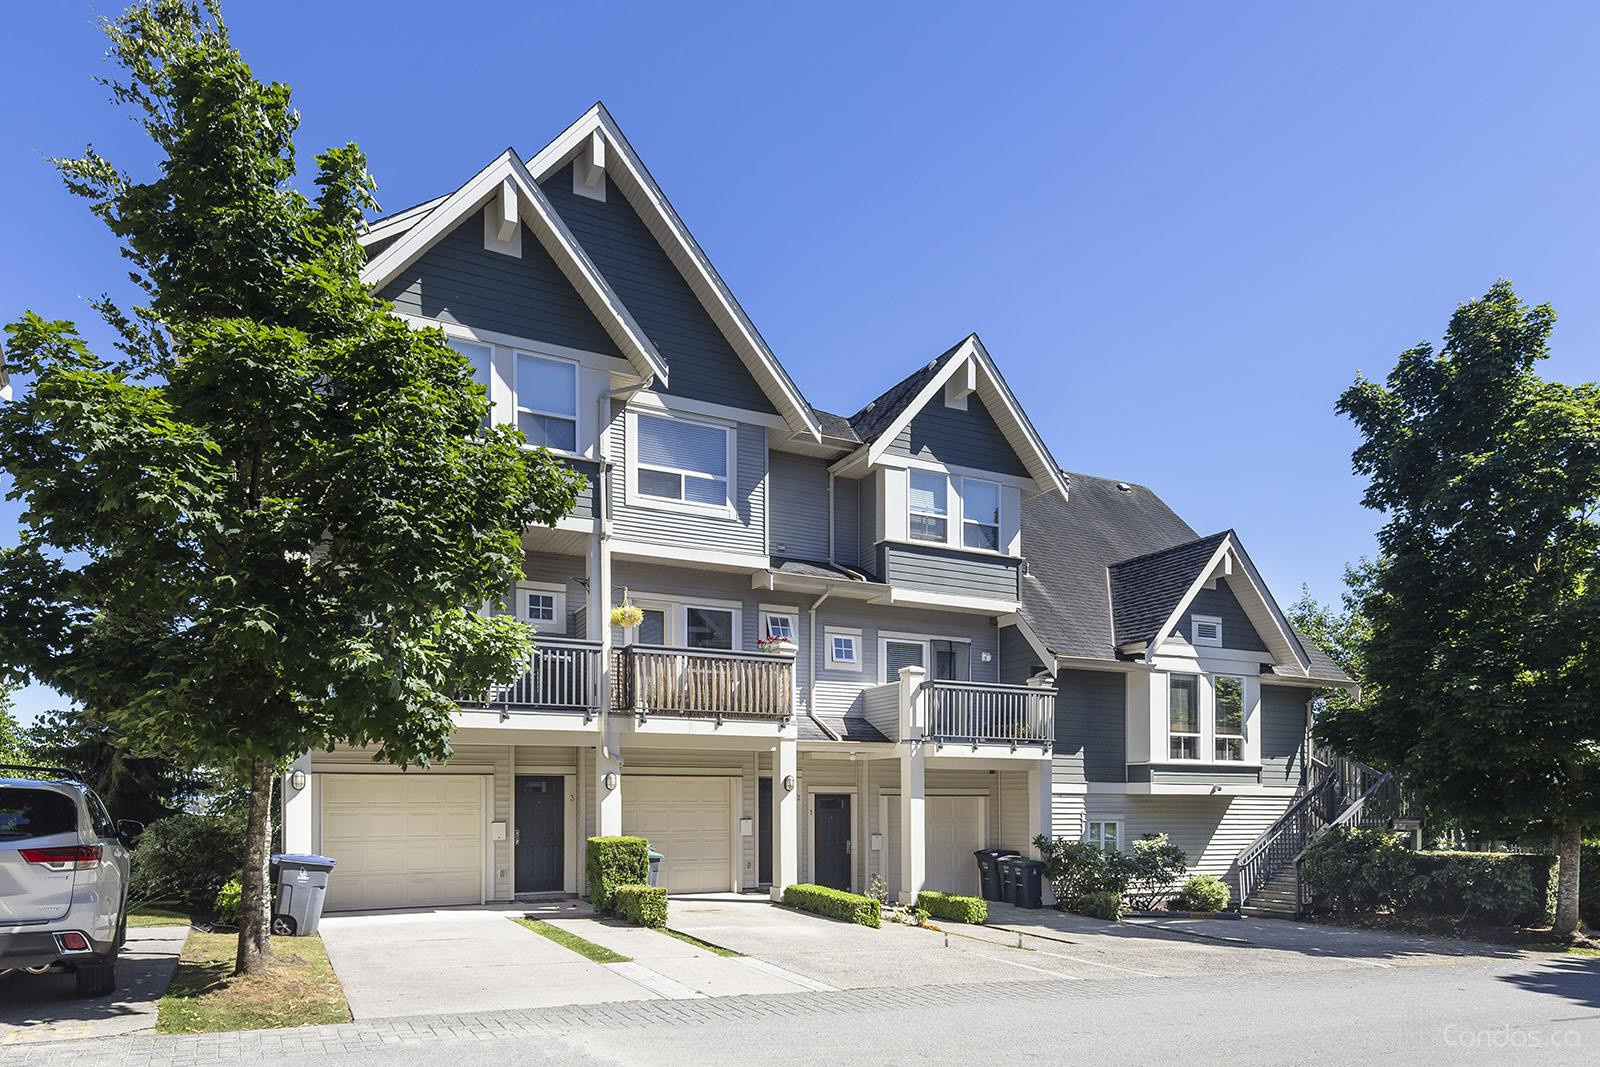 Springhill at 15065 58 Ave, Surrey 0